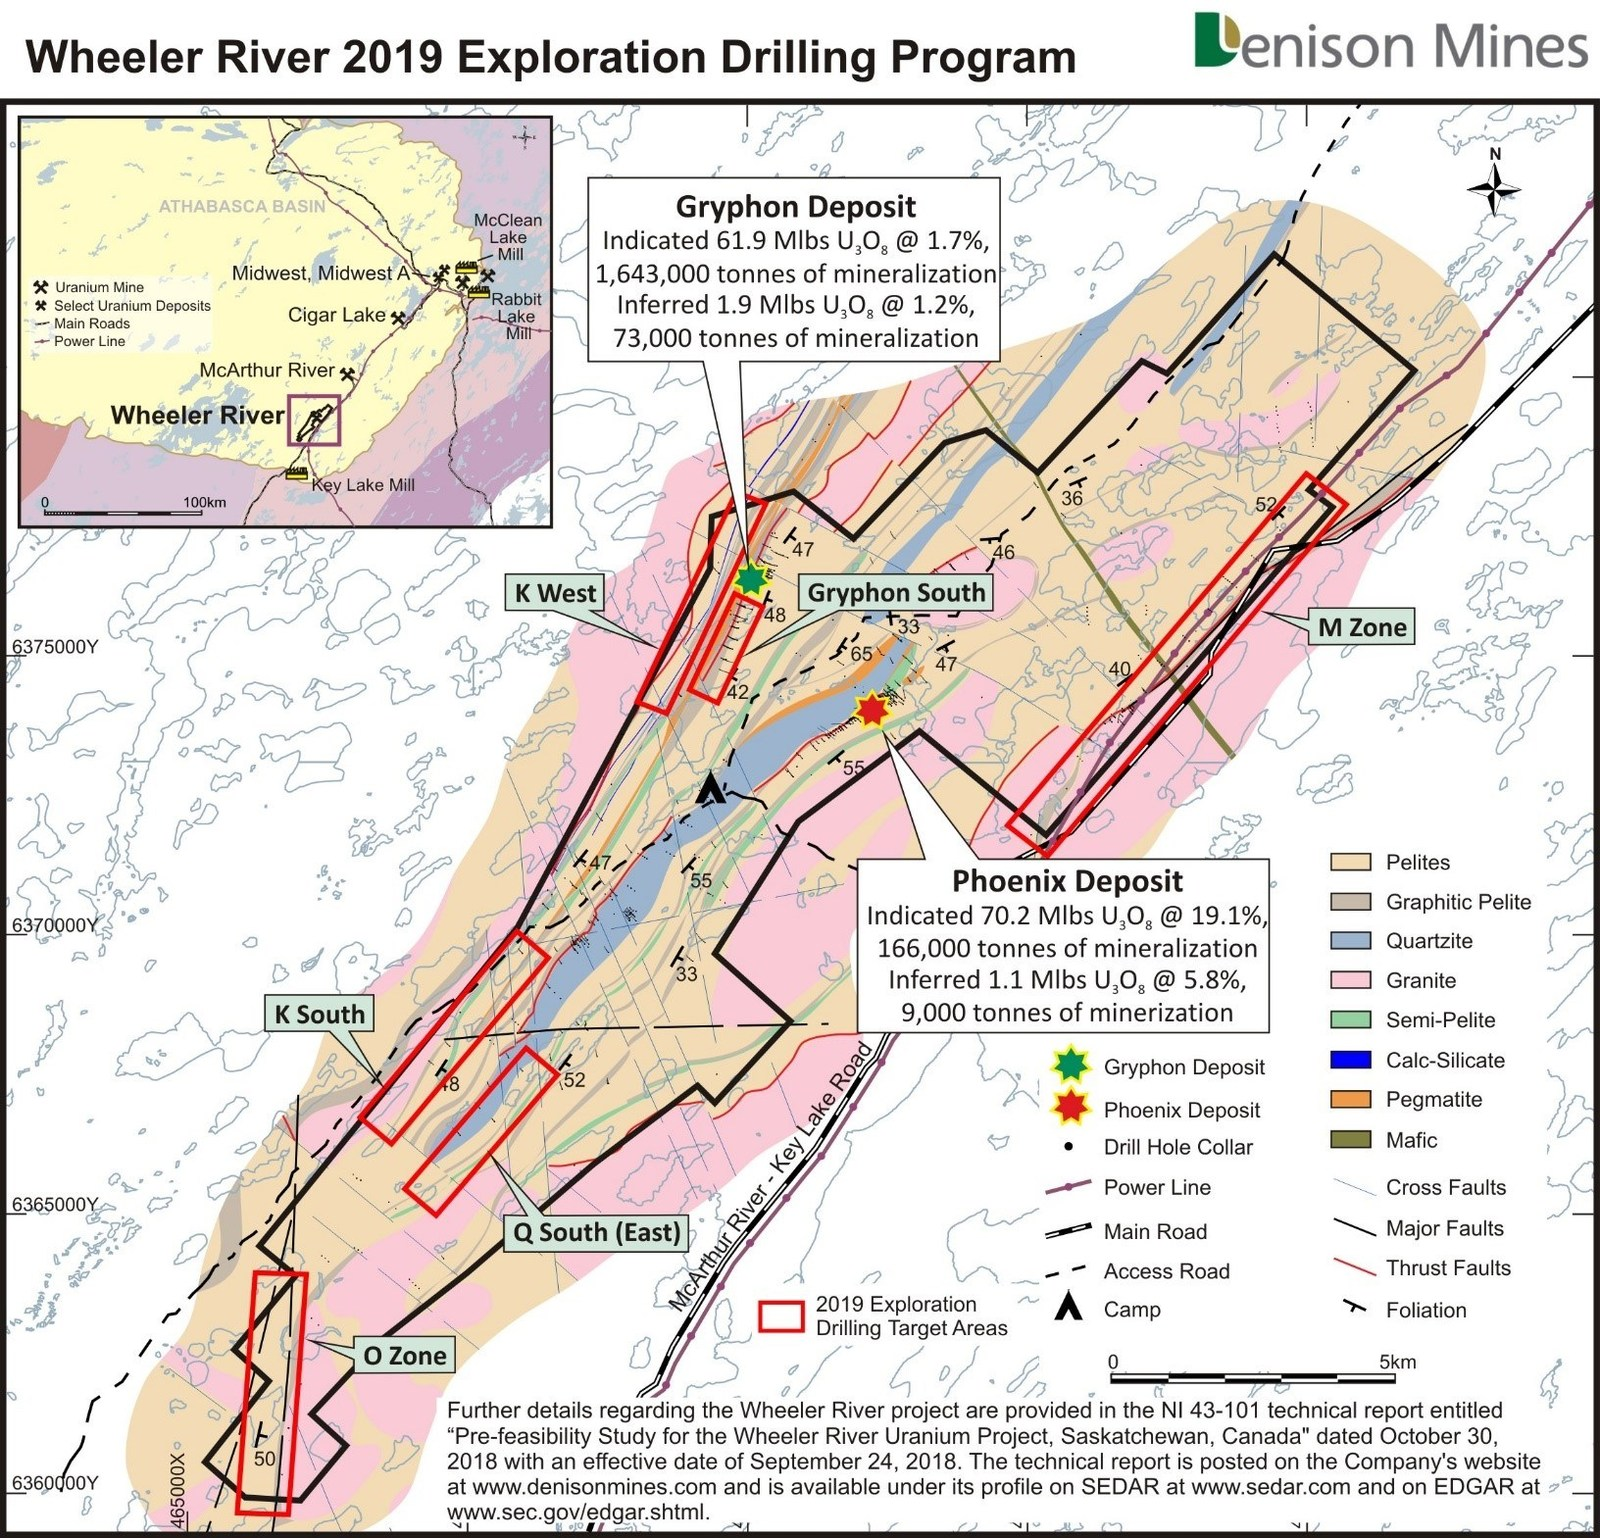 Figure 2: Location of the high priority regional target areas planned for exploration drill testing in 2019, shown on the Wheeler River basement geology map.